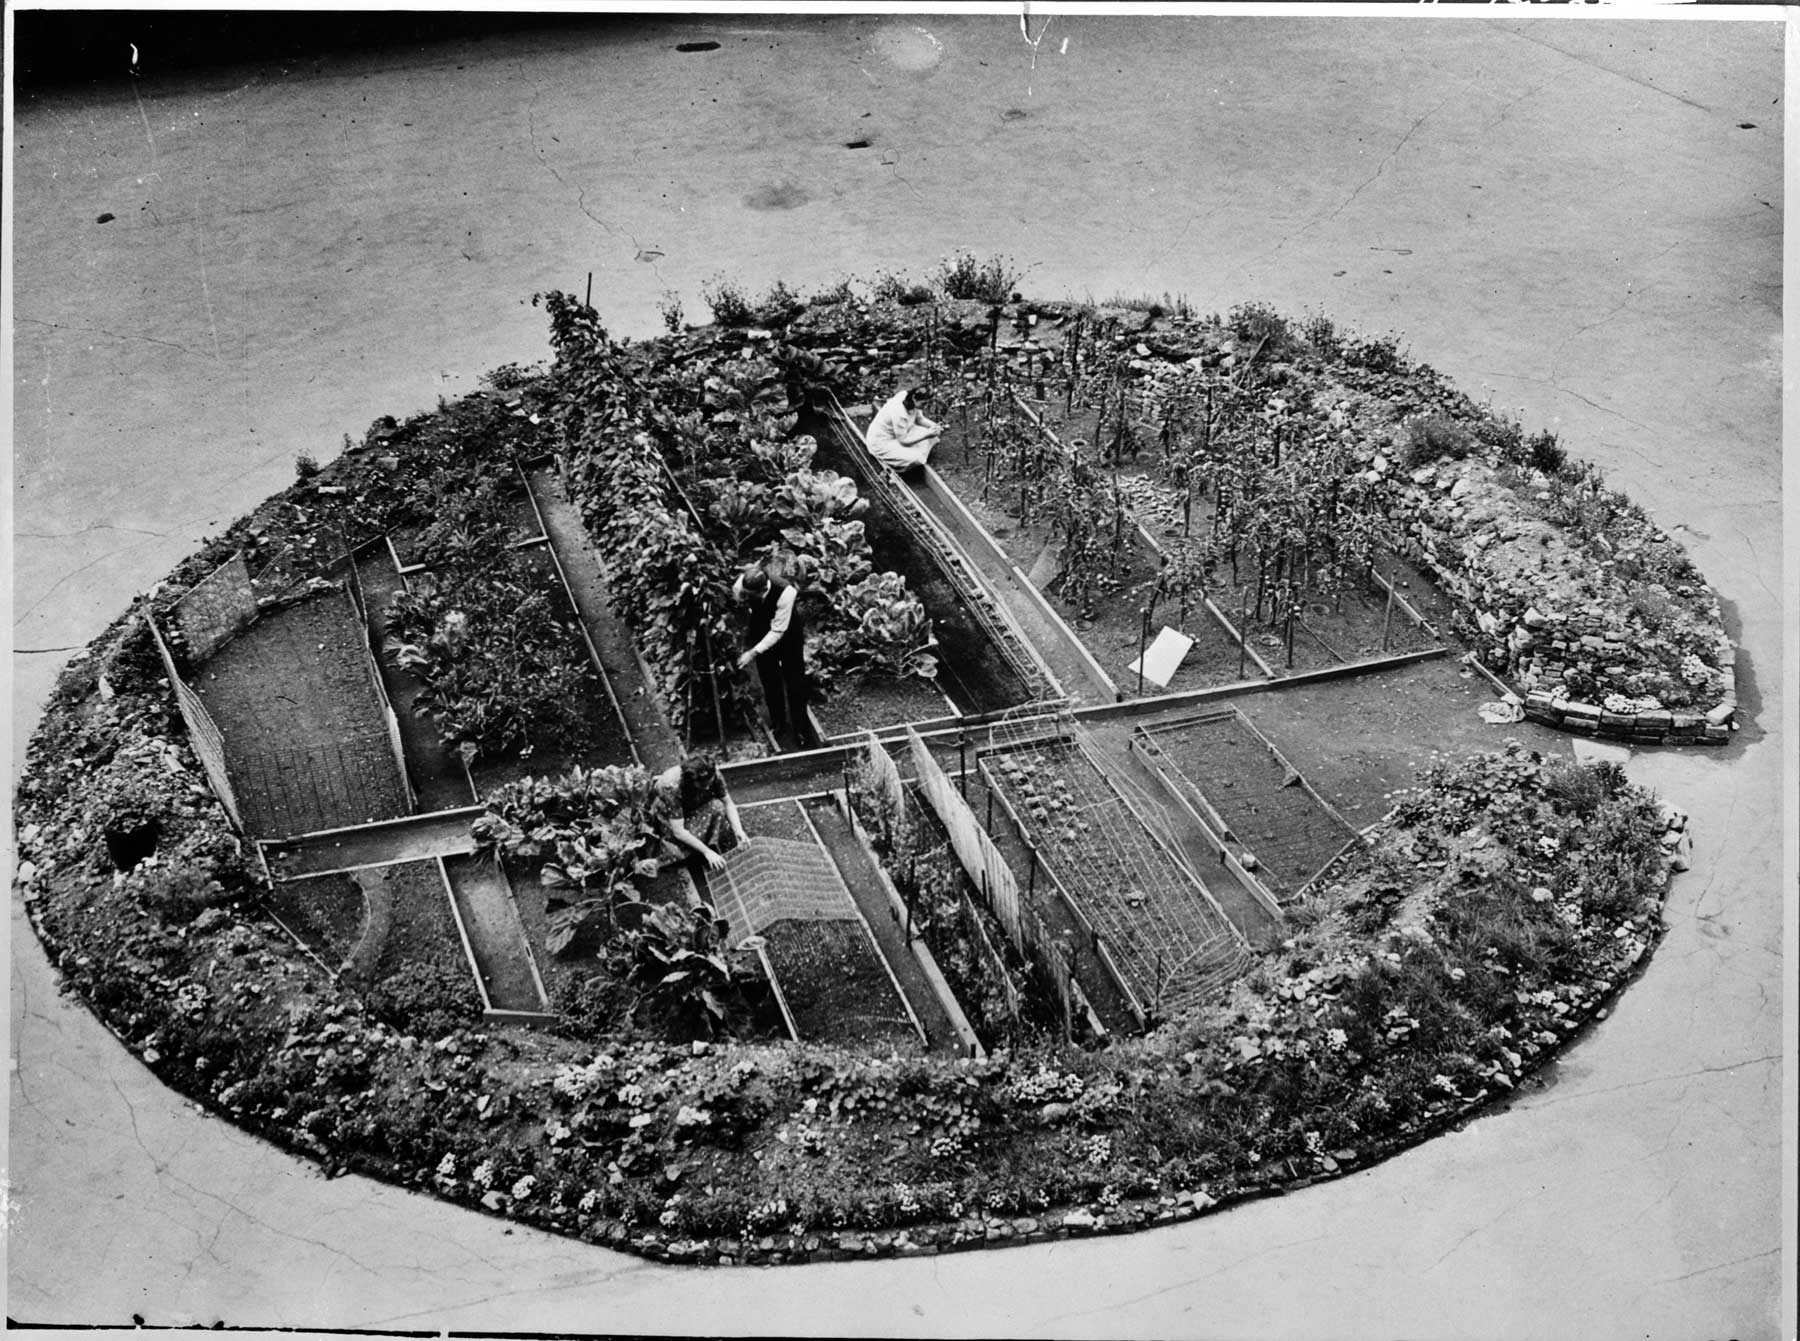 Victory garden planted in a bomb crater